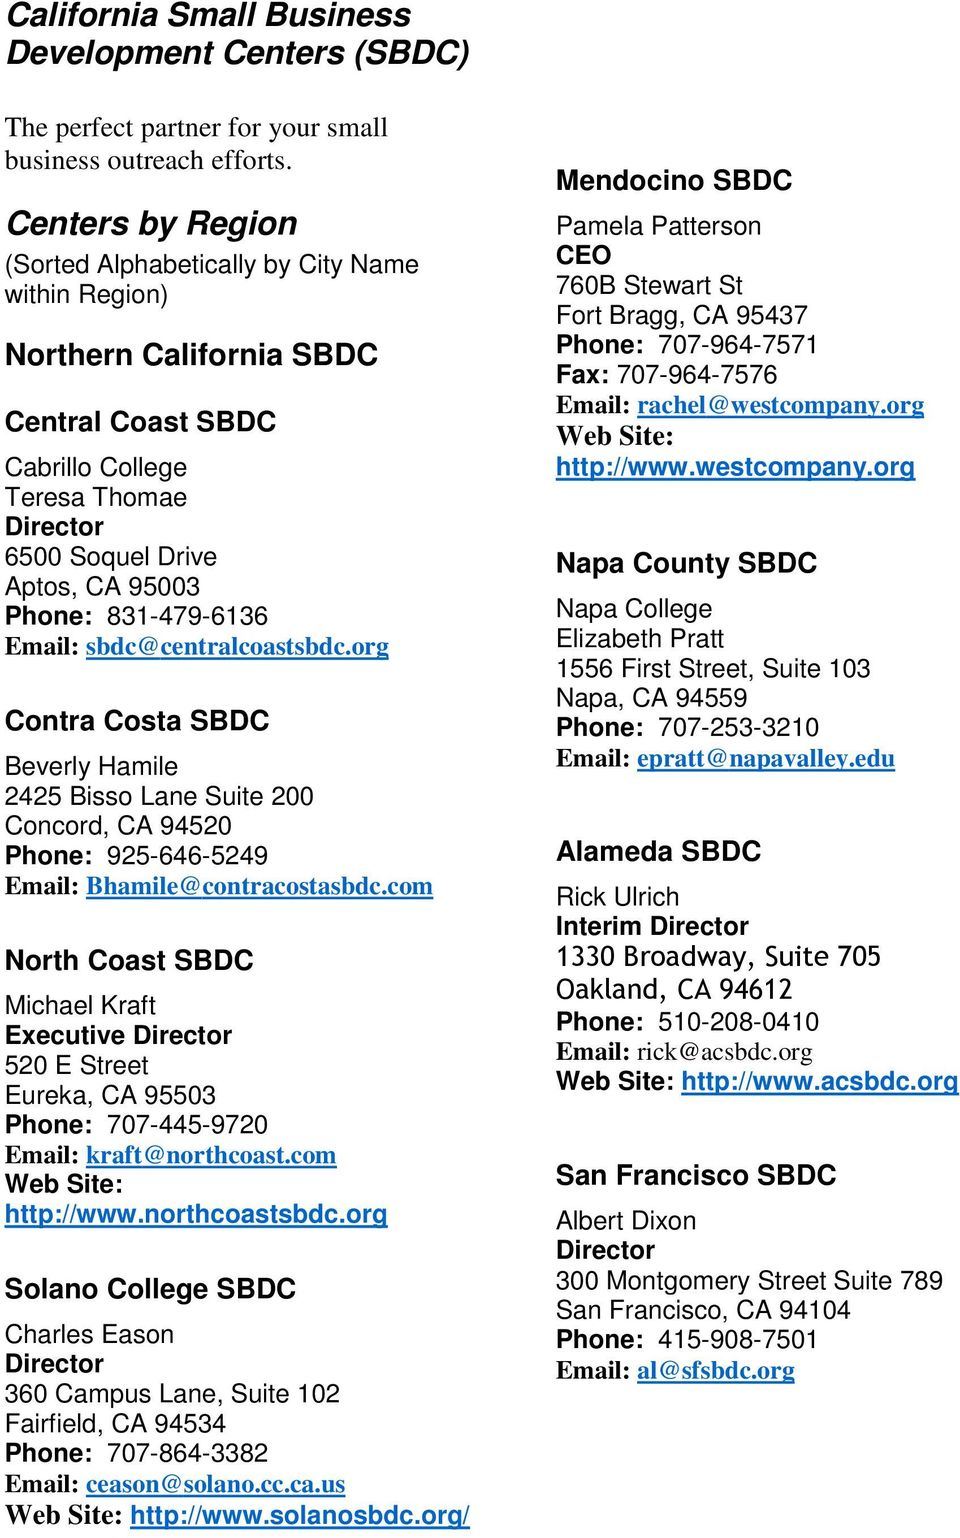 Email: sbdc@ centralcoastsbdc.org Contra Costa SBDC Beverly Hamile 2425 Bisso Lane Suite 200 Concord, CA 94520 Phone: 925-646-5249 Email: Bhamile@ contracostasbdc.